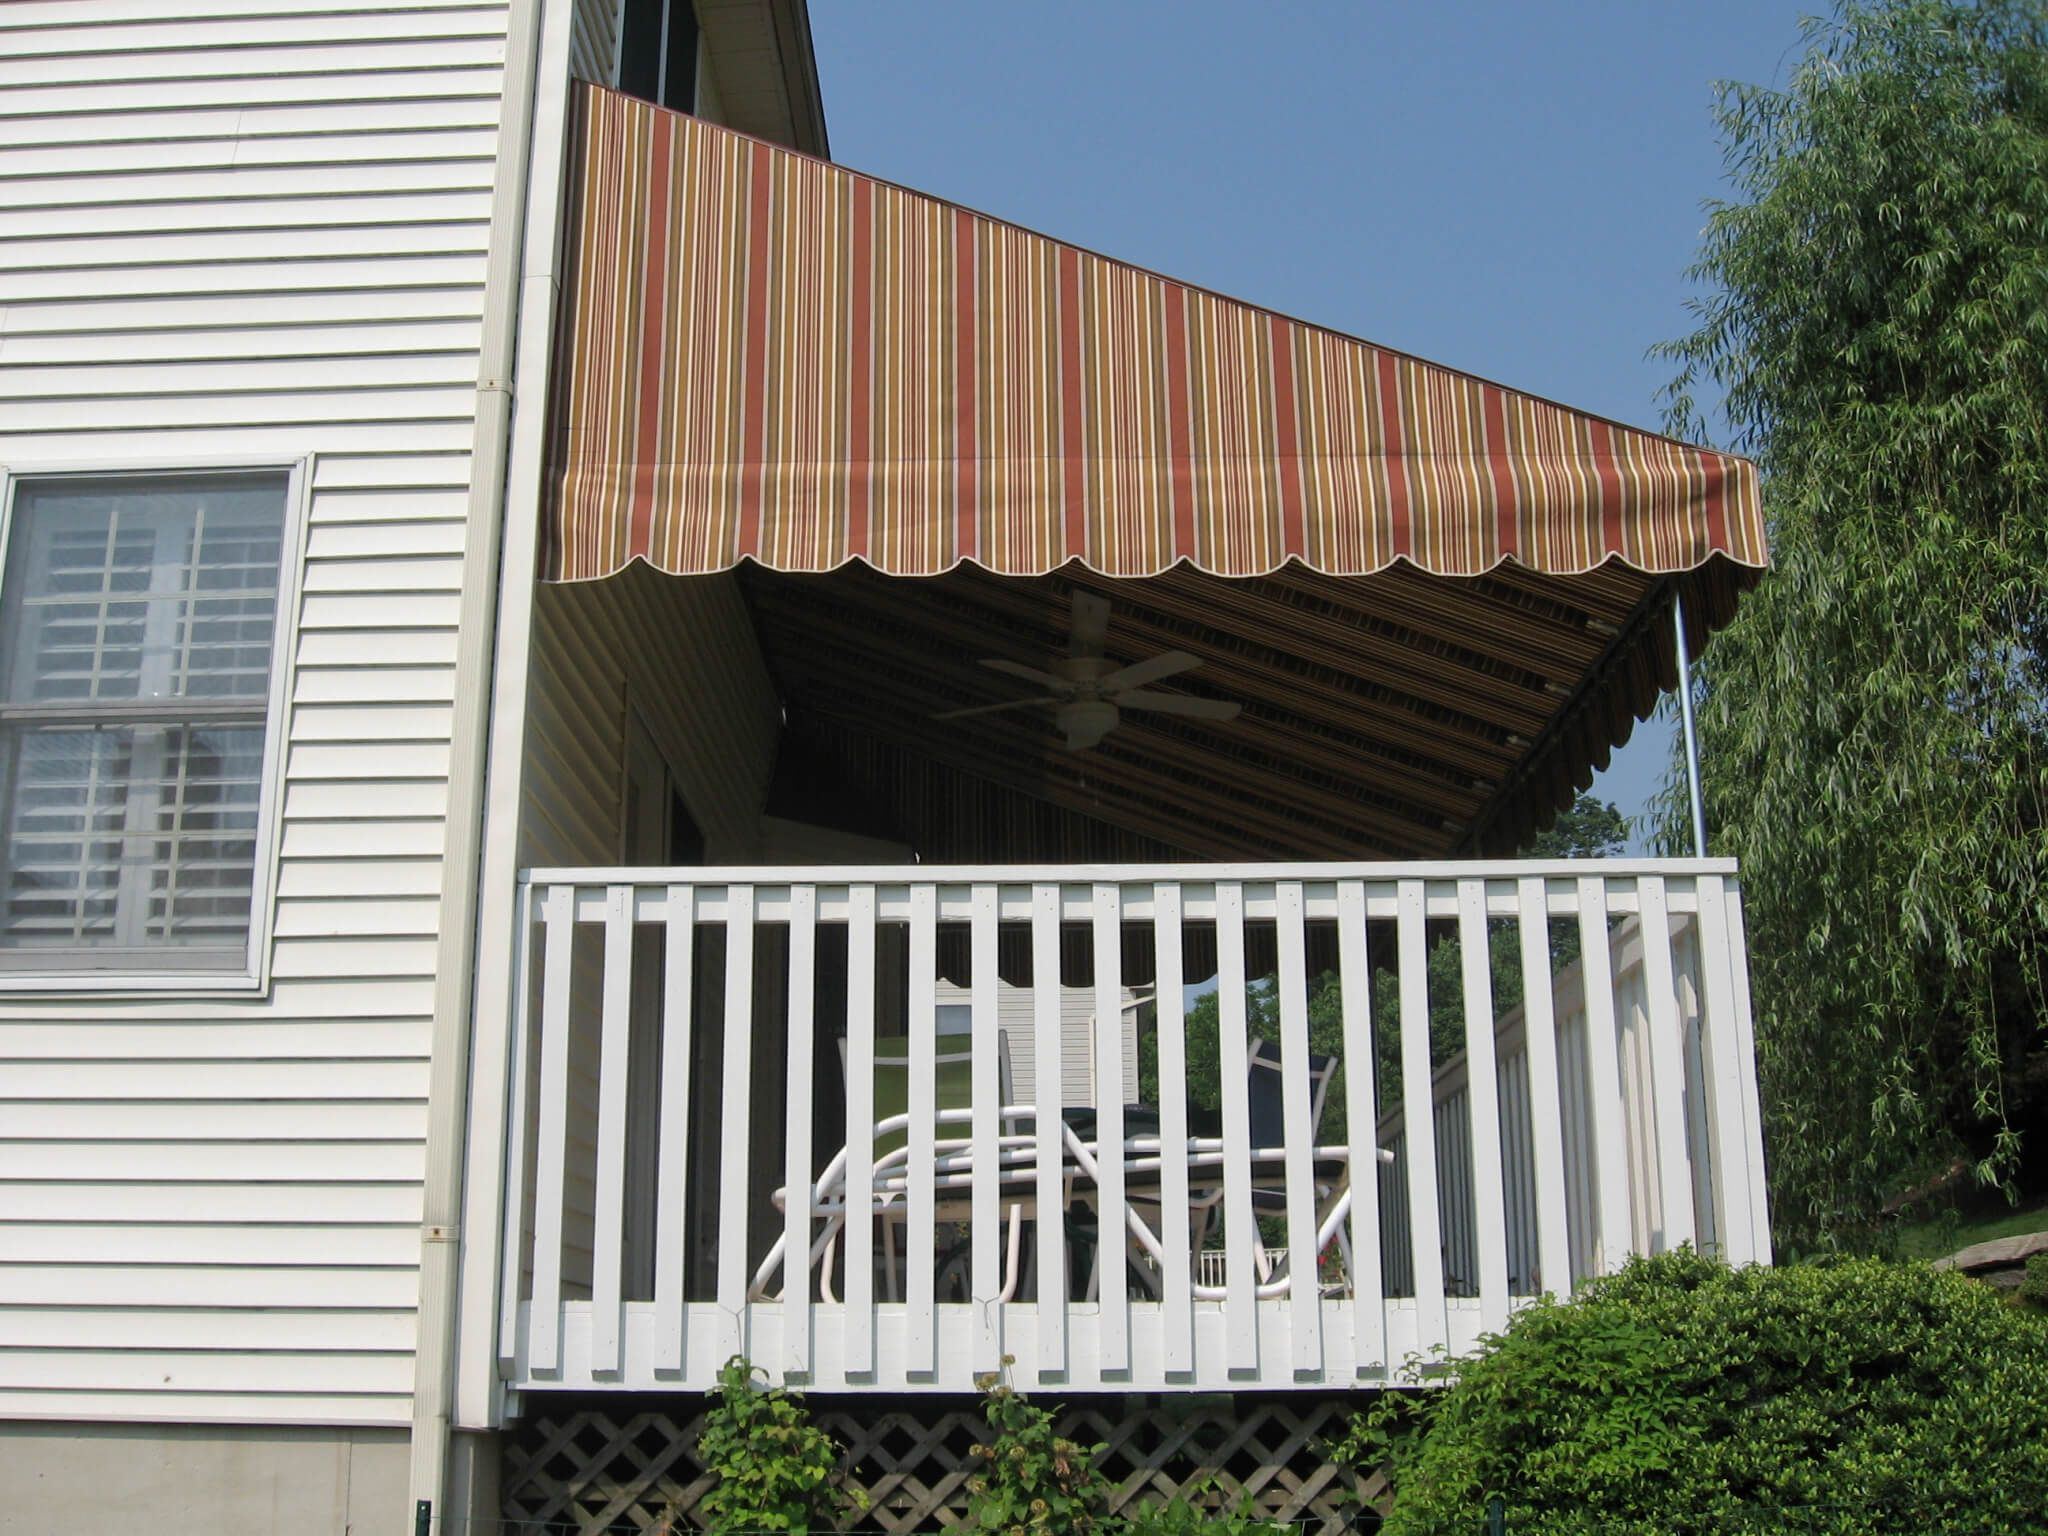 stationary awning roof decks the canopy pin required awnings for deck slope achieve mount to